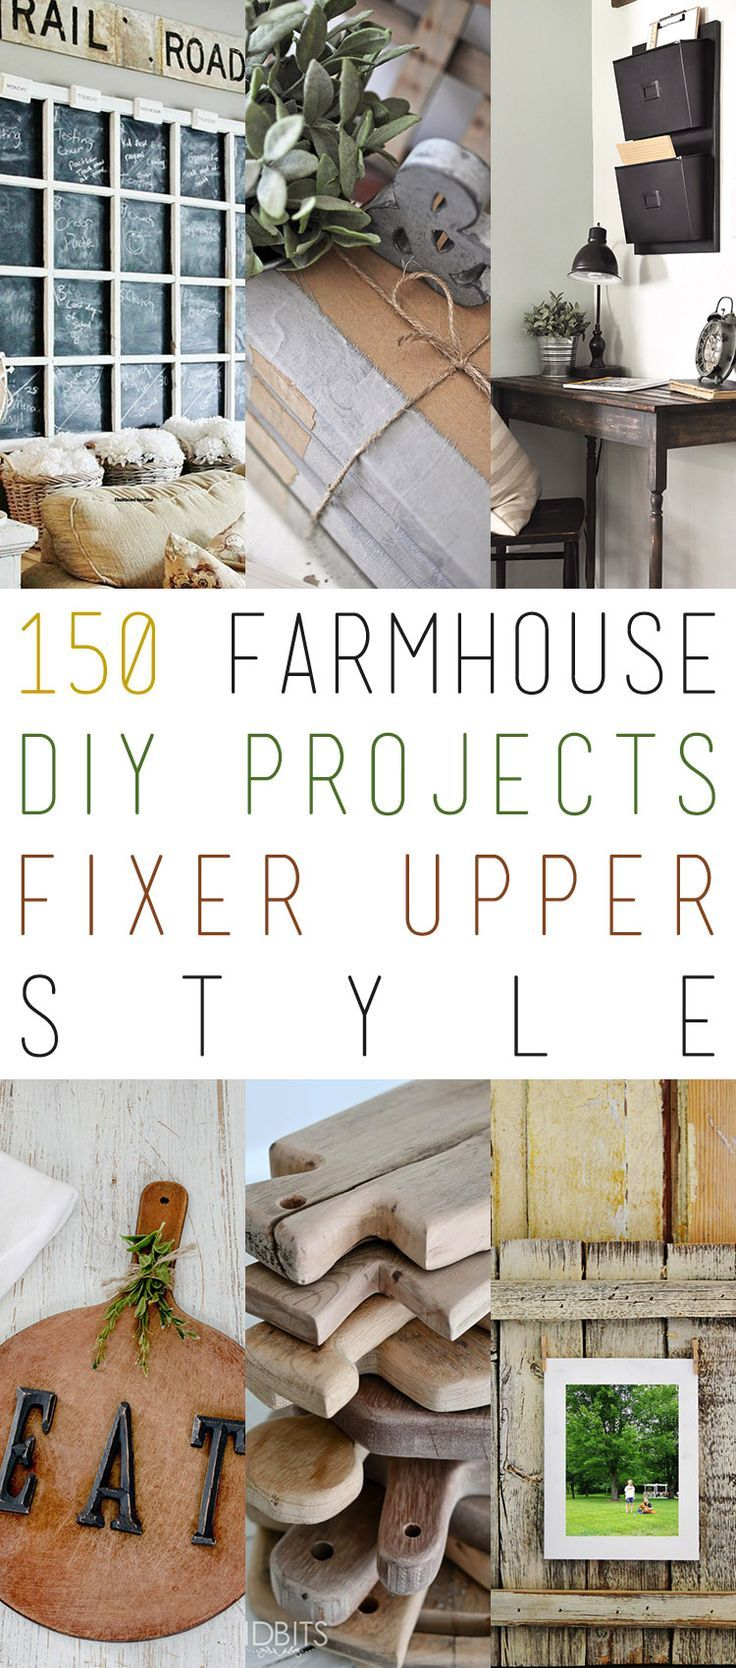 17 best images about artsy and crafty on pinterest jars burlap